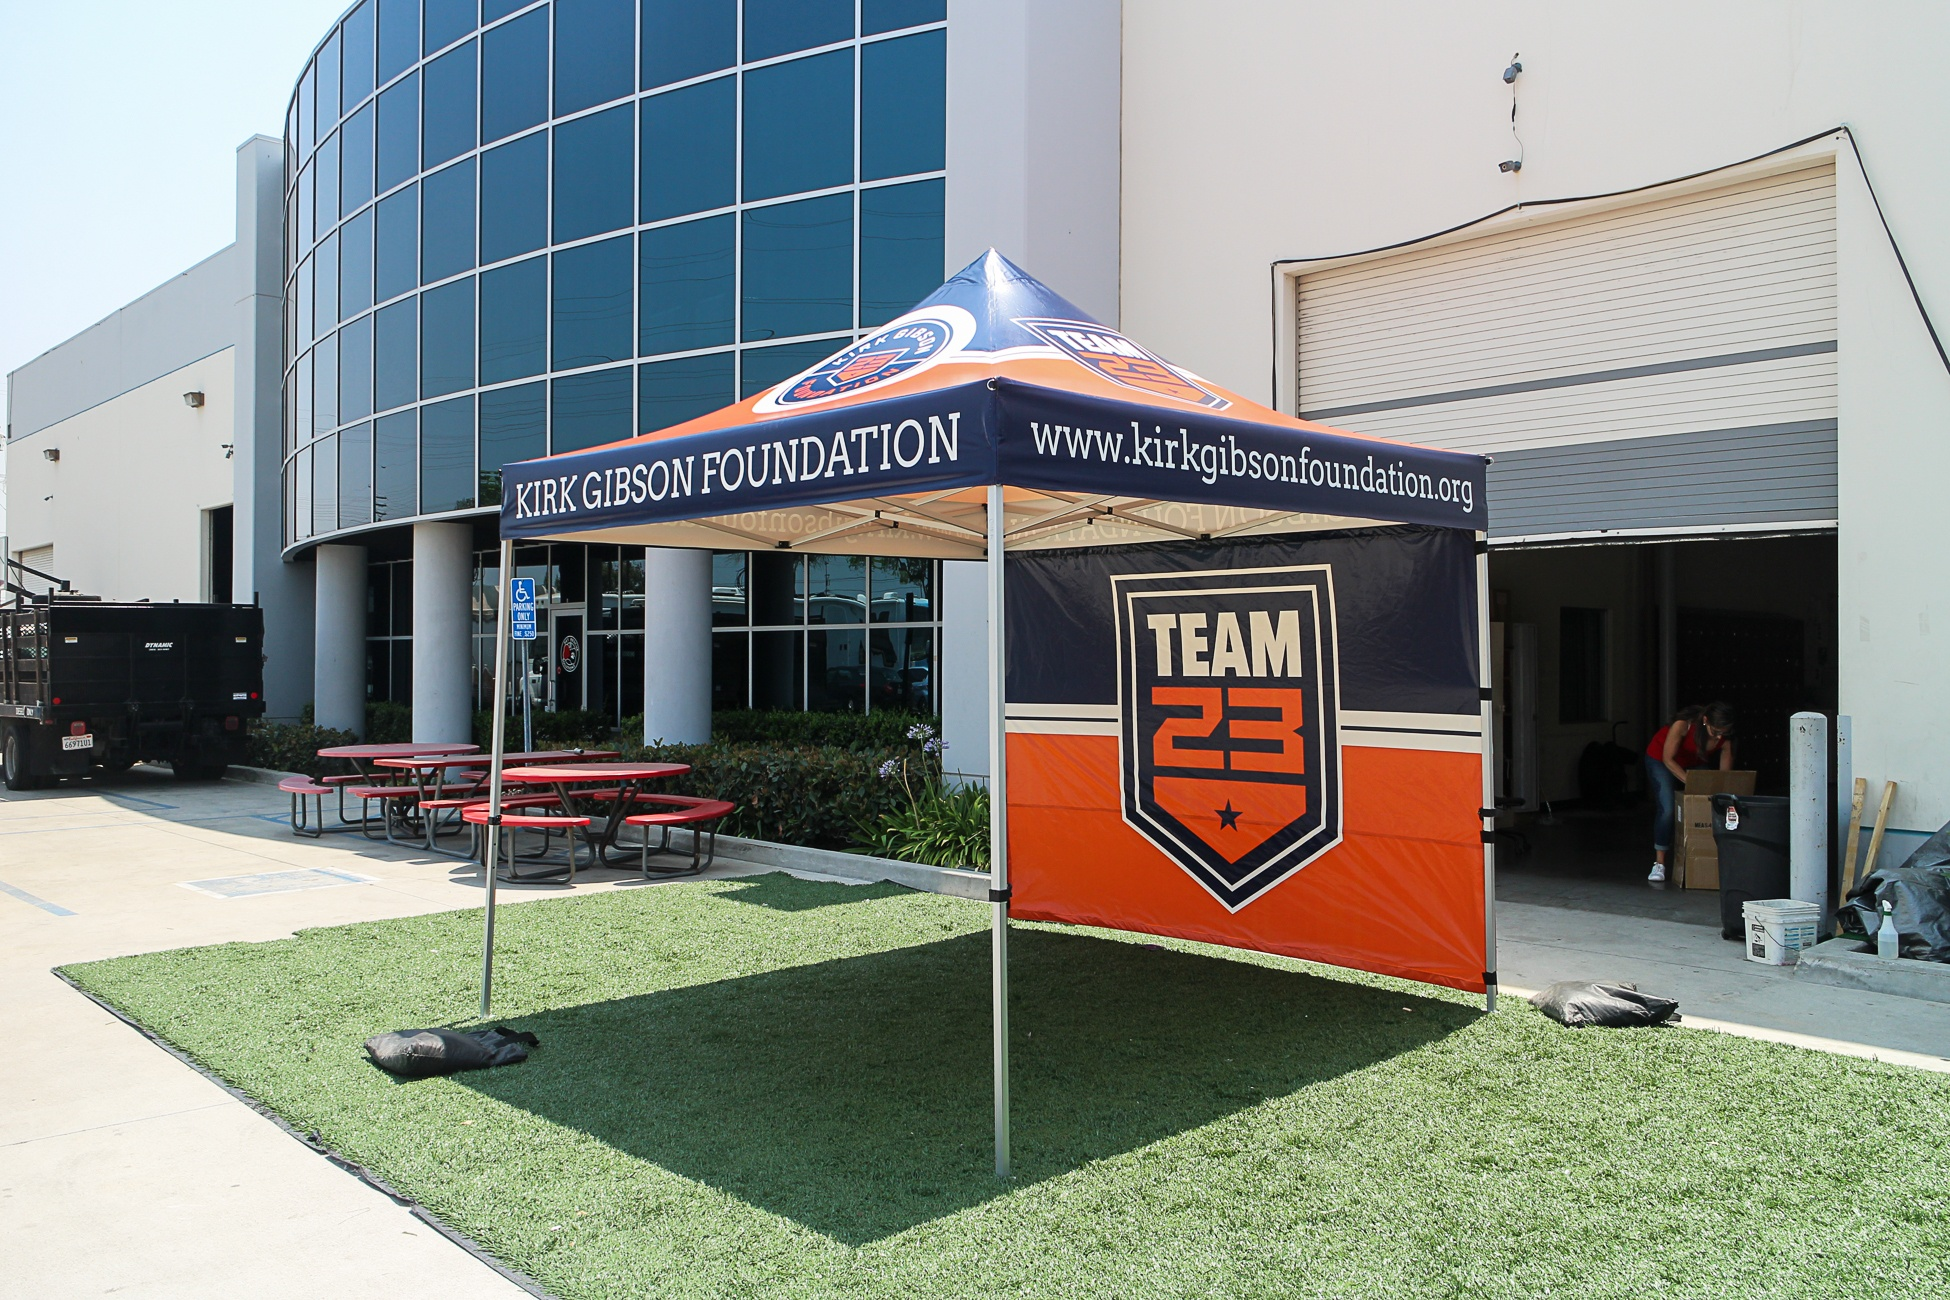 10x10-custom-canopy-tent-for-kirk-gibson-foundation